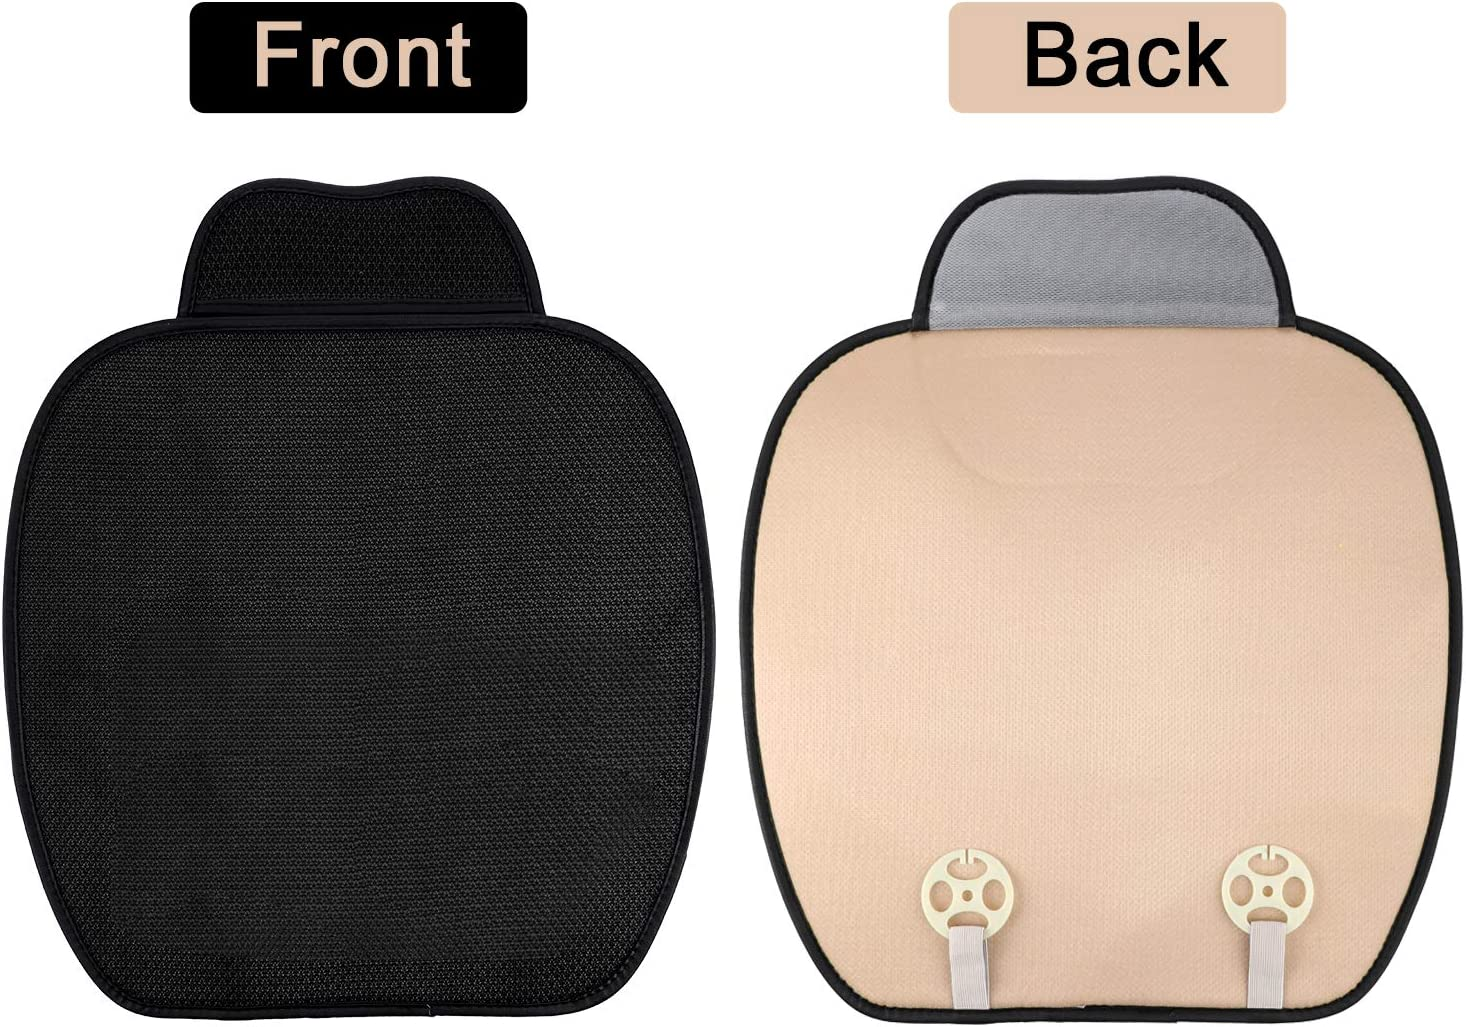 Boao 2 Pieces Car Seat Cushion Pad Car Front Seat Cushion Cover Pad Mat Interior Car Seat Cushion for Auto Car Supplies Office Chair Favors